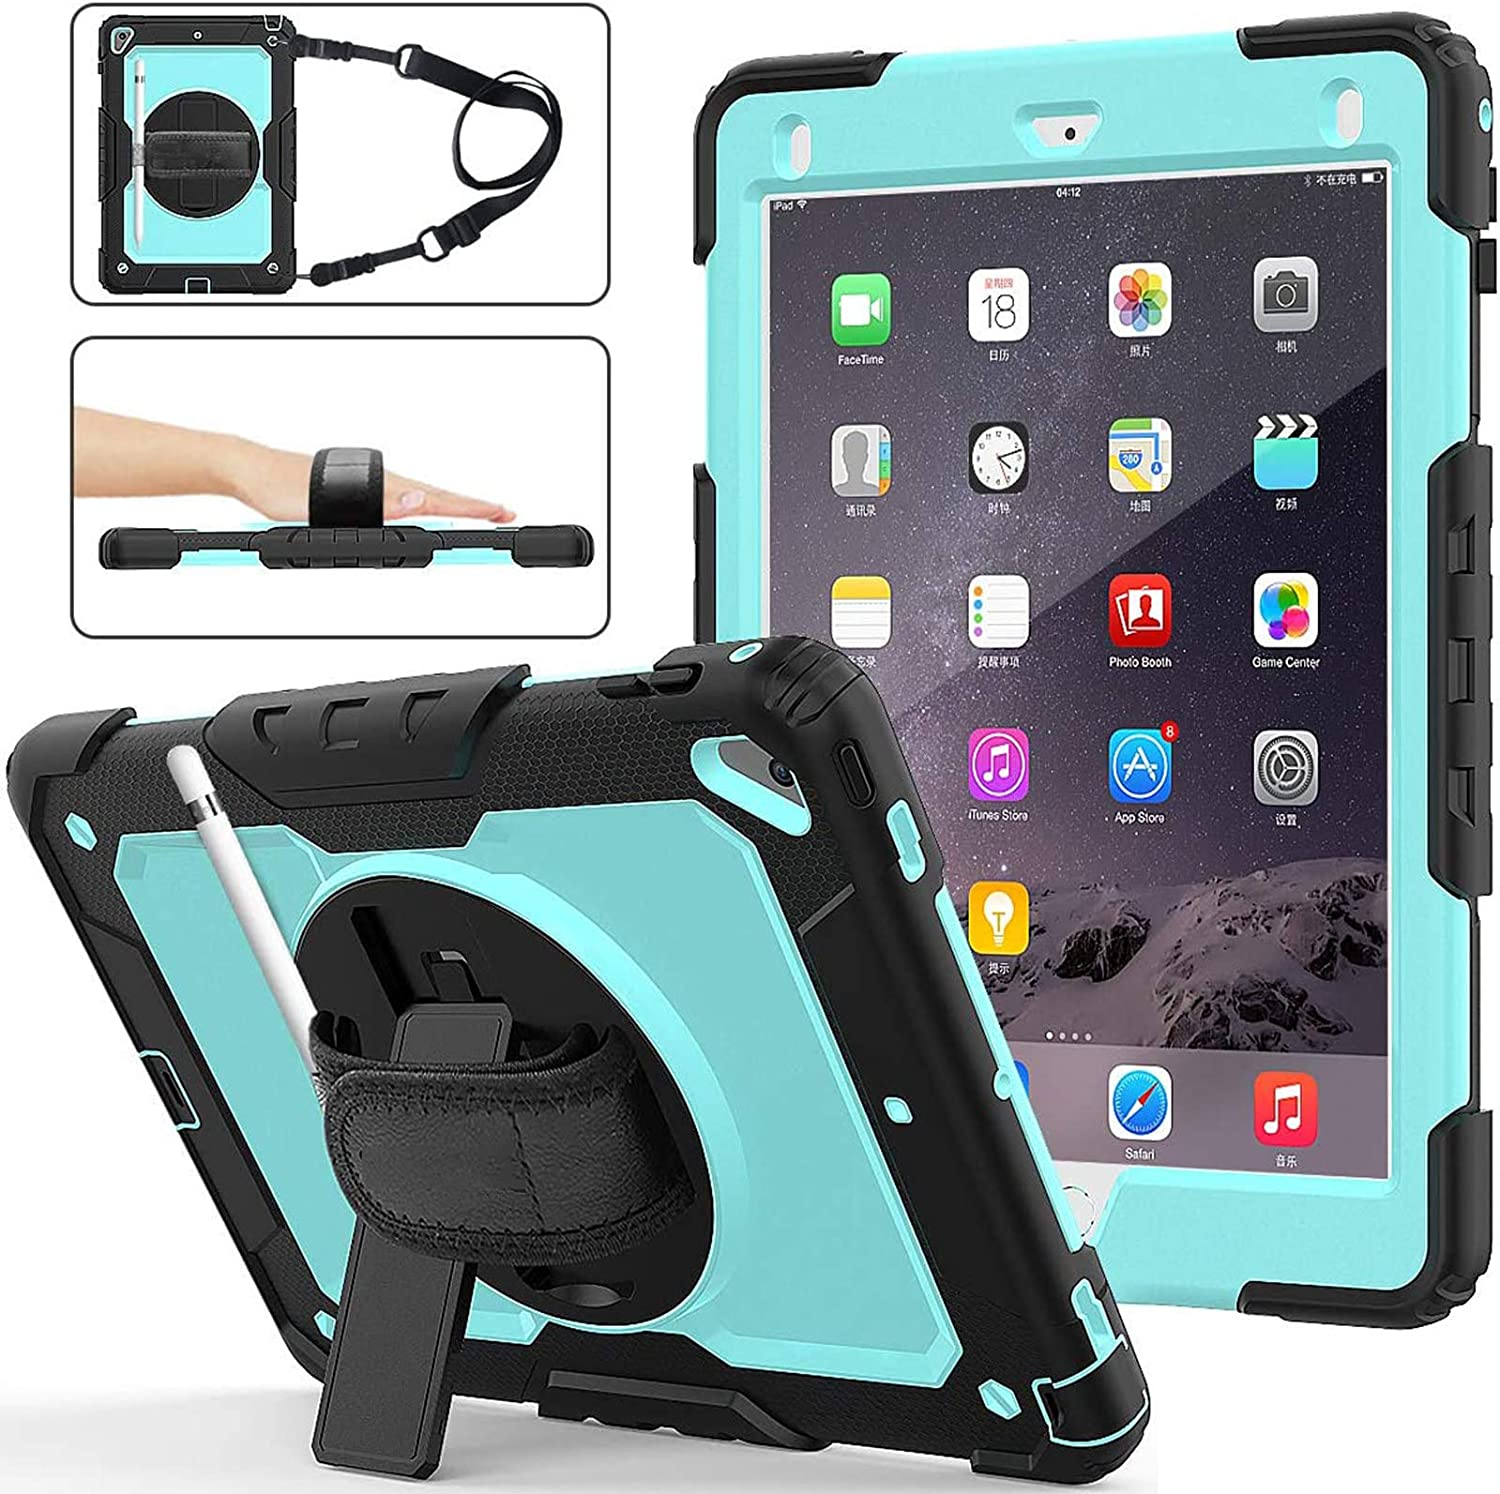 iPad 6th/5th Generation Case With Screen Protector,New iPad 9.7 2018/2017 Case Herize,Stylus Pencil Holder/Full body Protective Shock proof Case With 360 Rotating Stand/Strap For Air 2/Pro 9.7,Skyblue